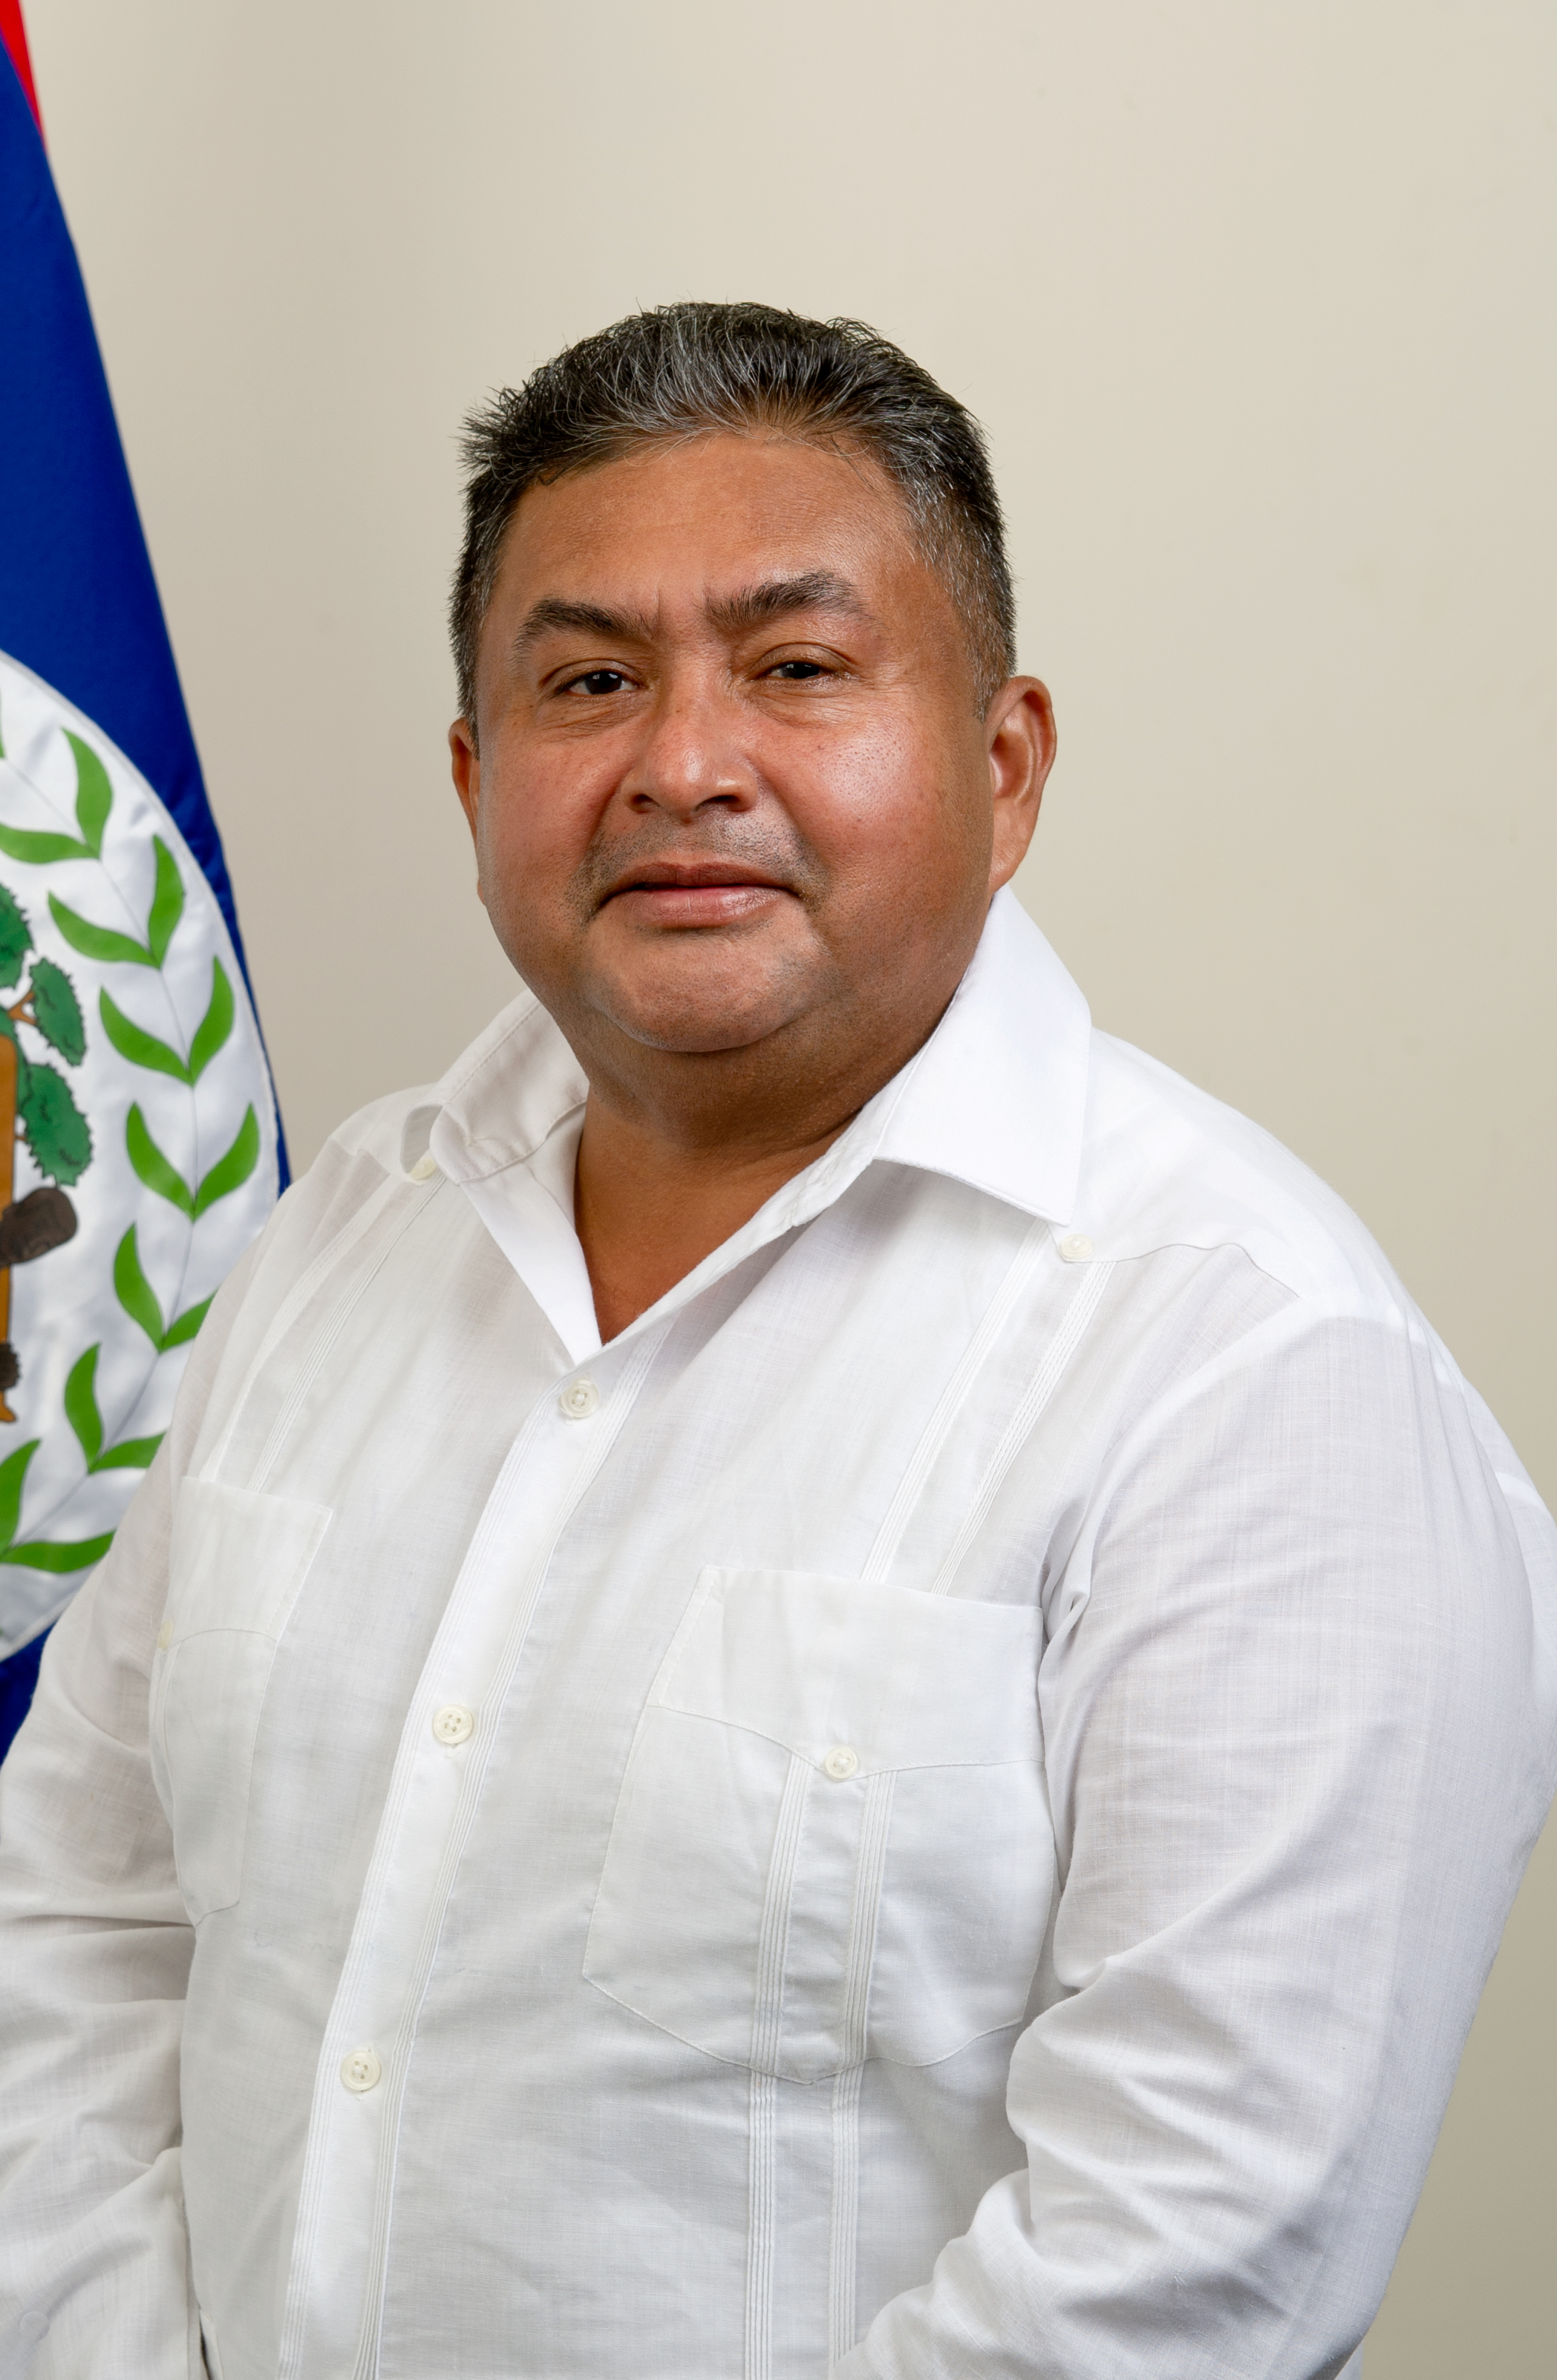 Hon. Oscar Requena